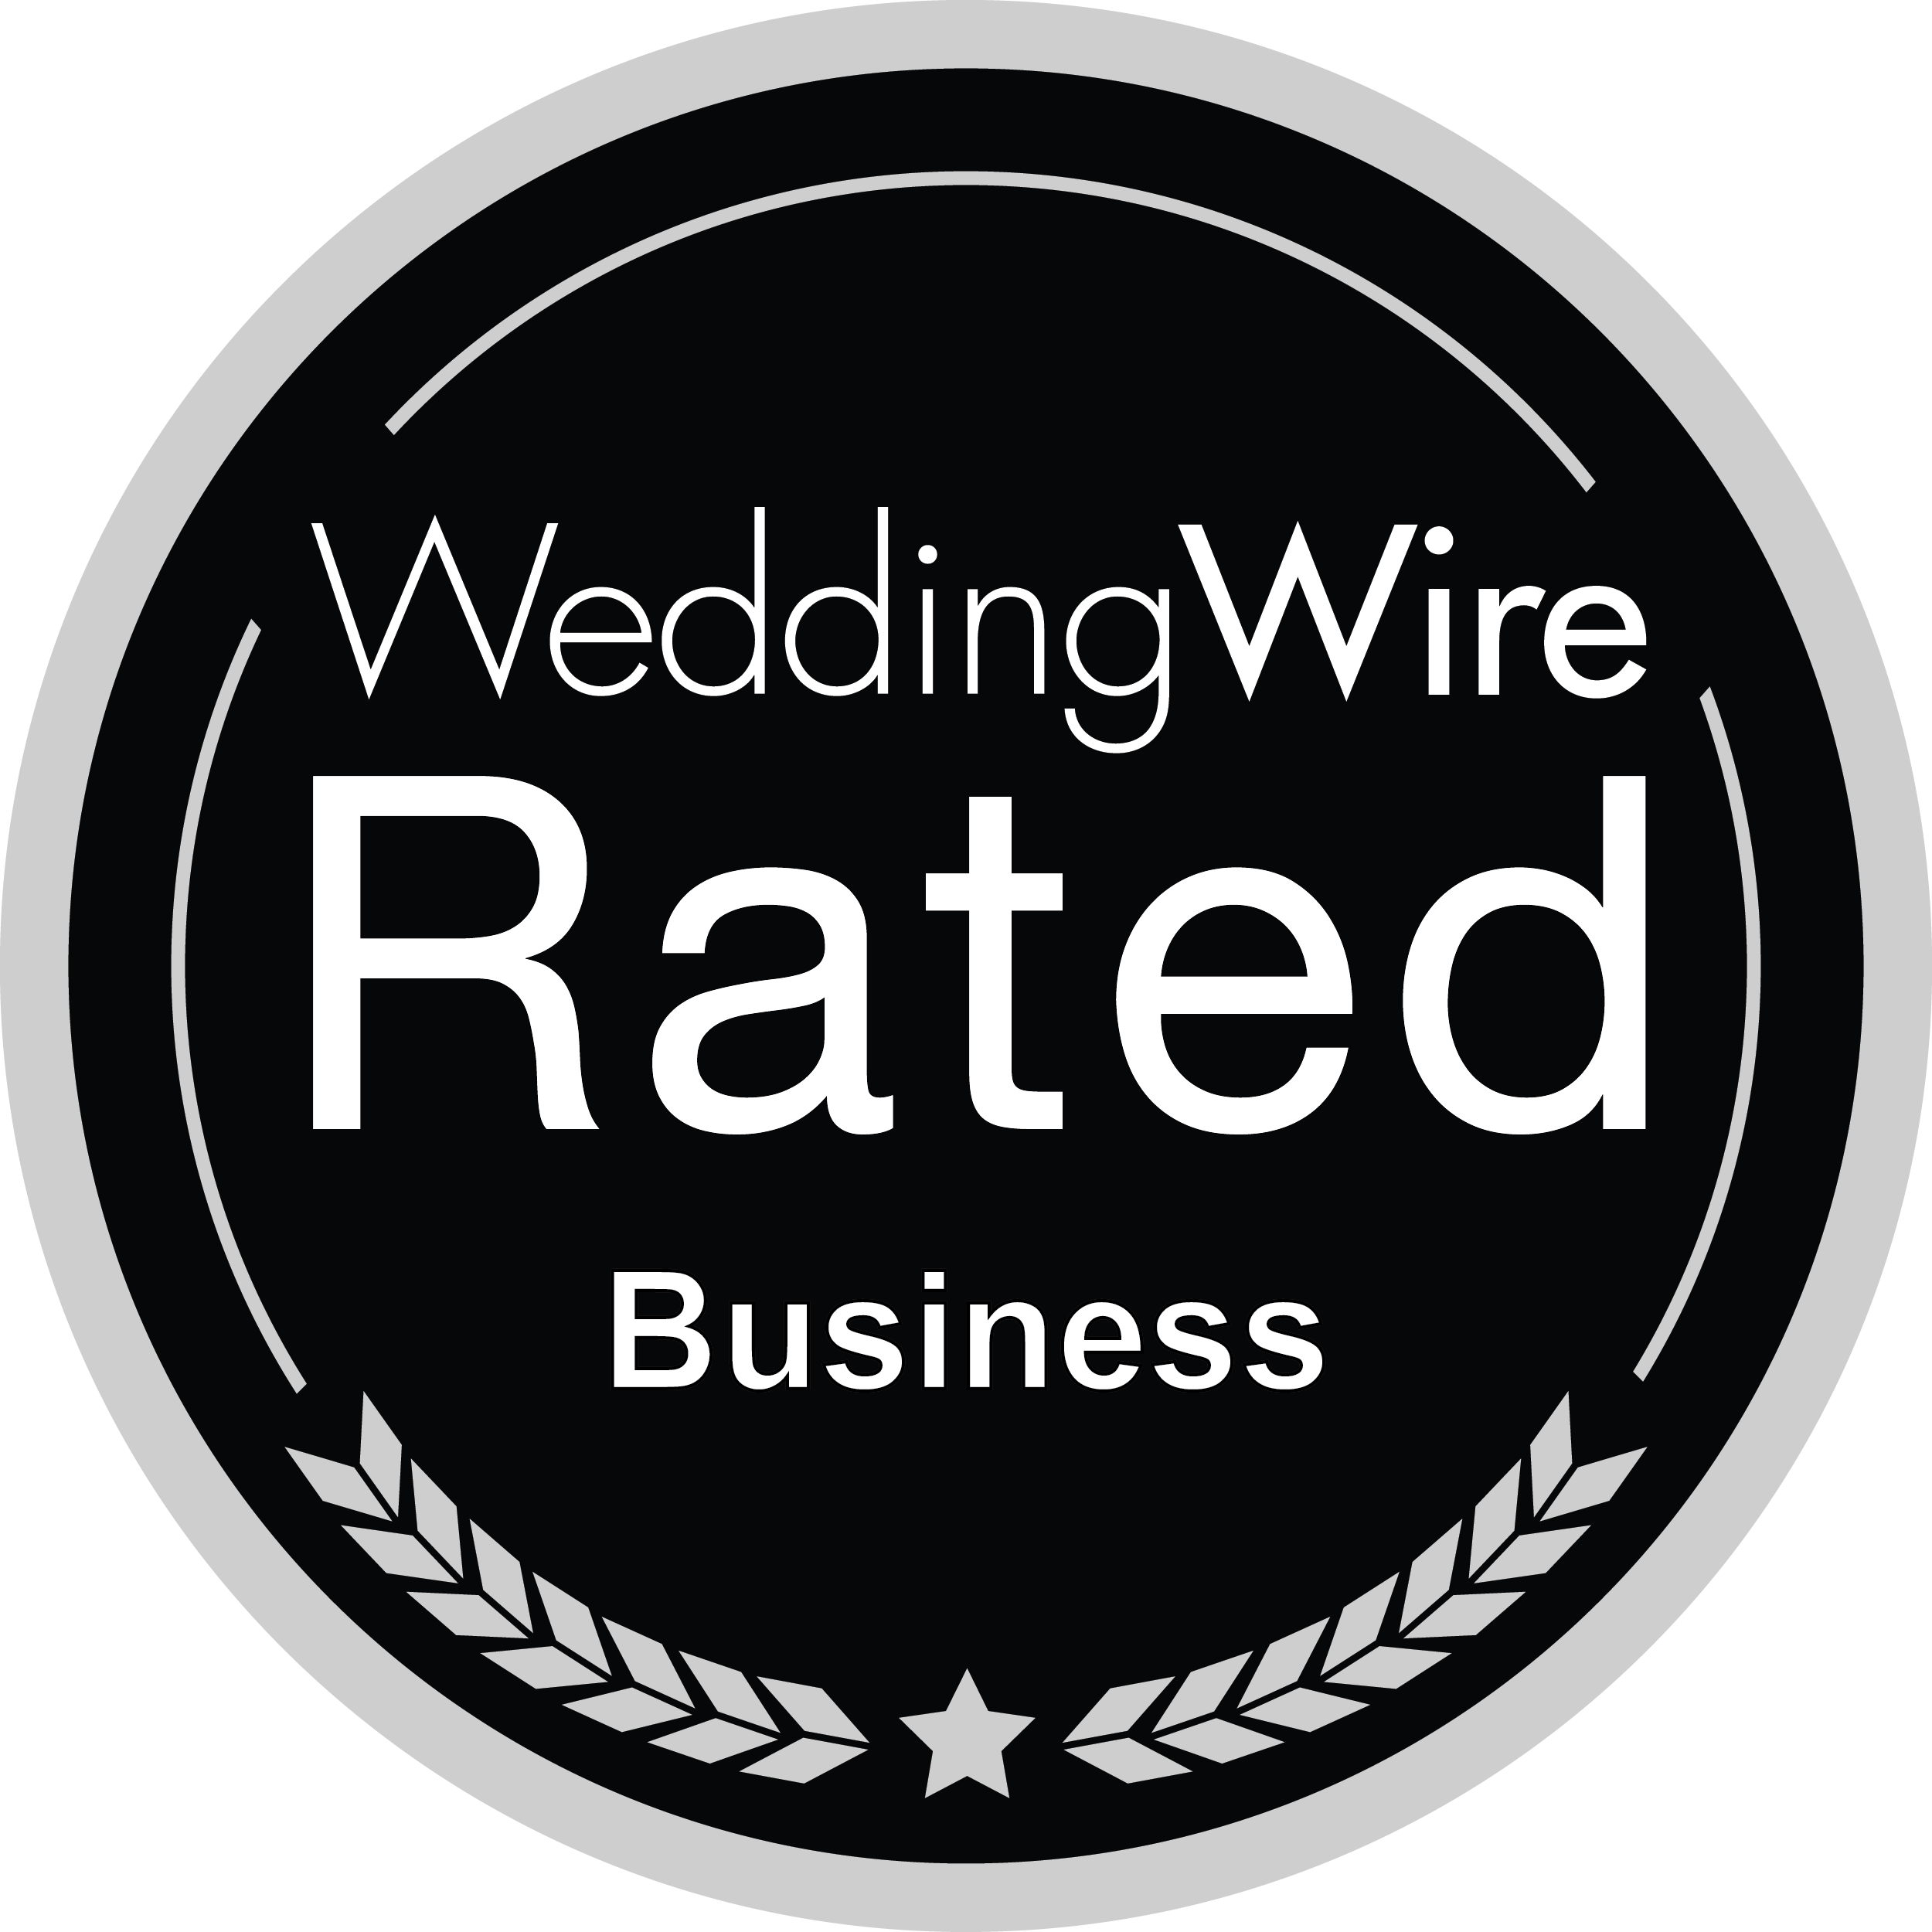 WeddingWire-Rated-Black-Business.png